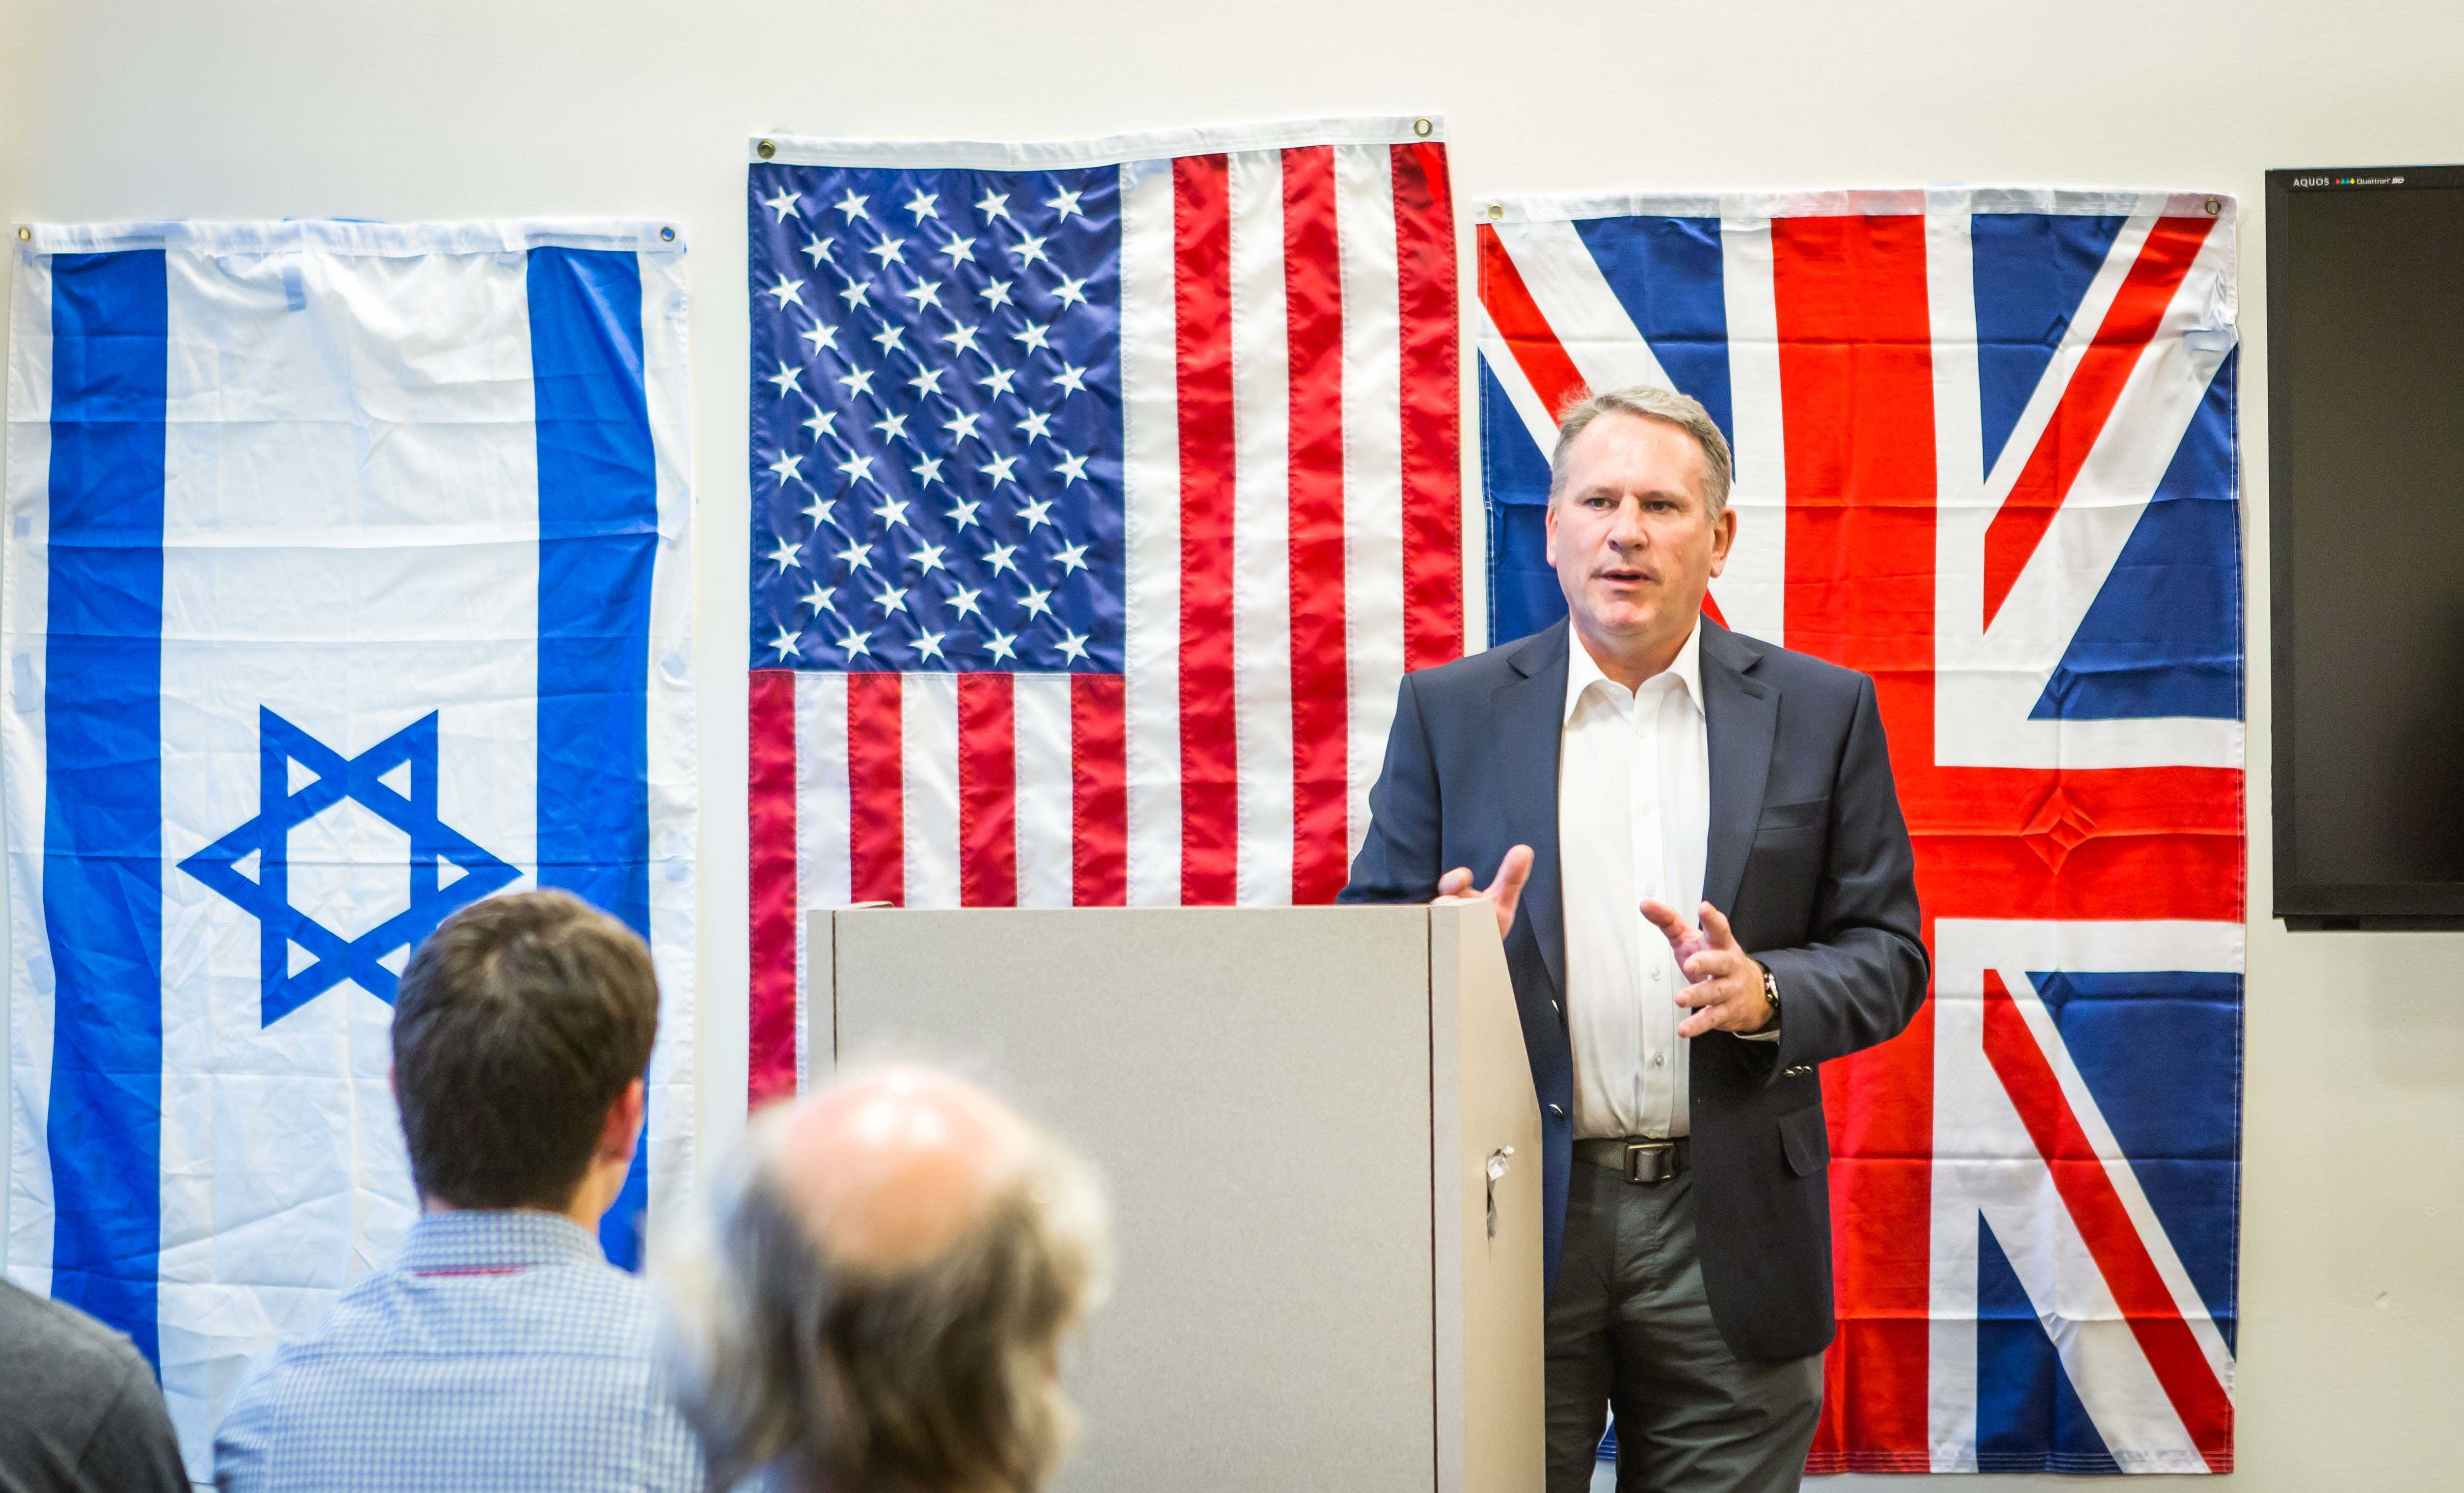 Colonel Richard Kemp speaks passionately to NYU students about the morality of Israel's army.